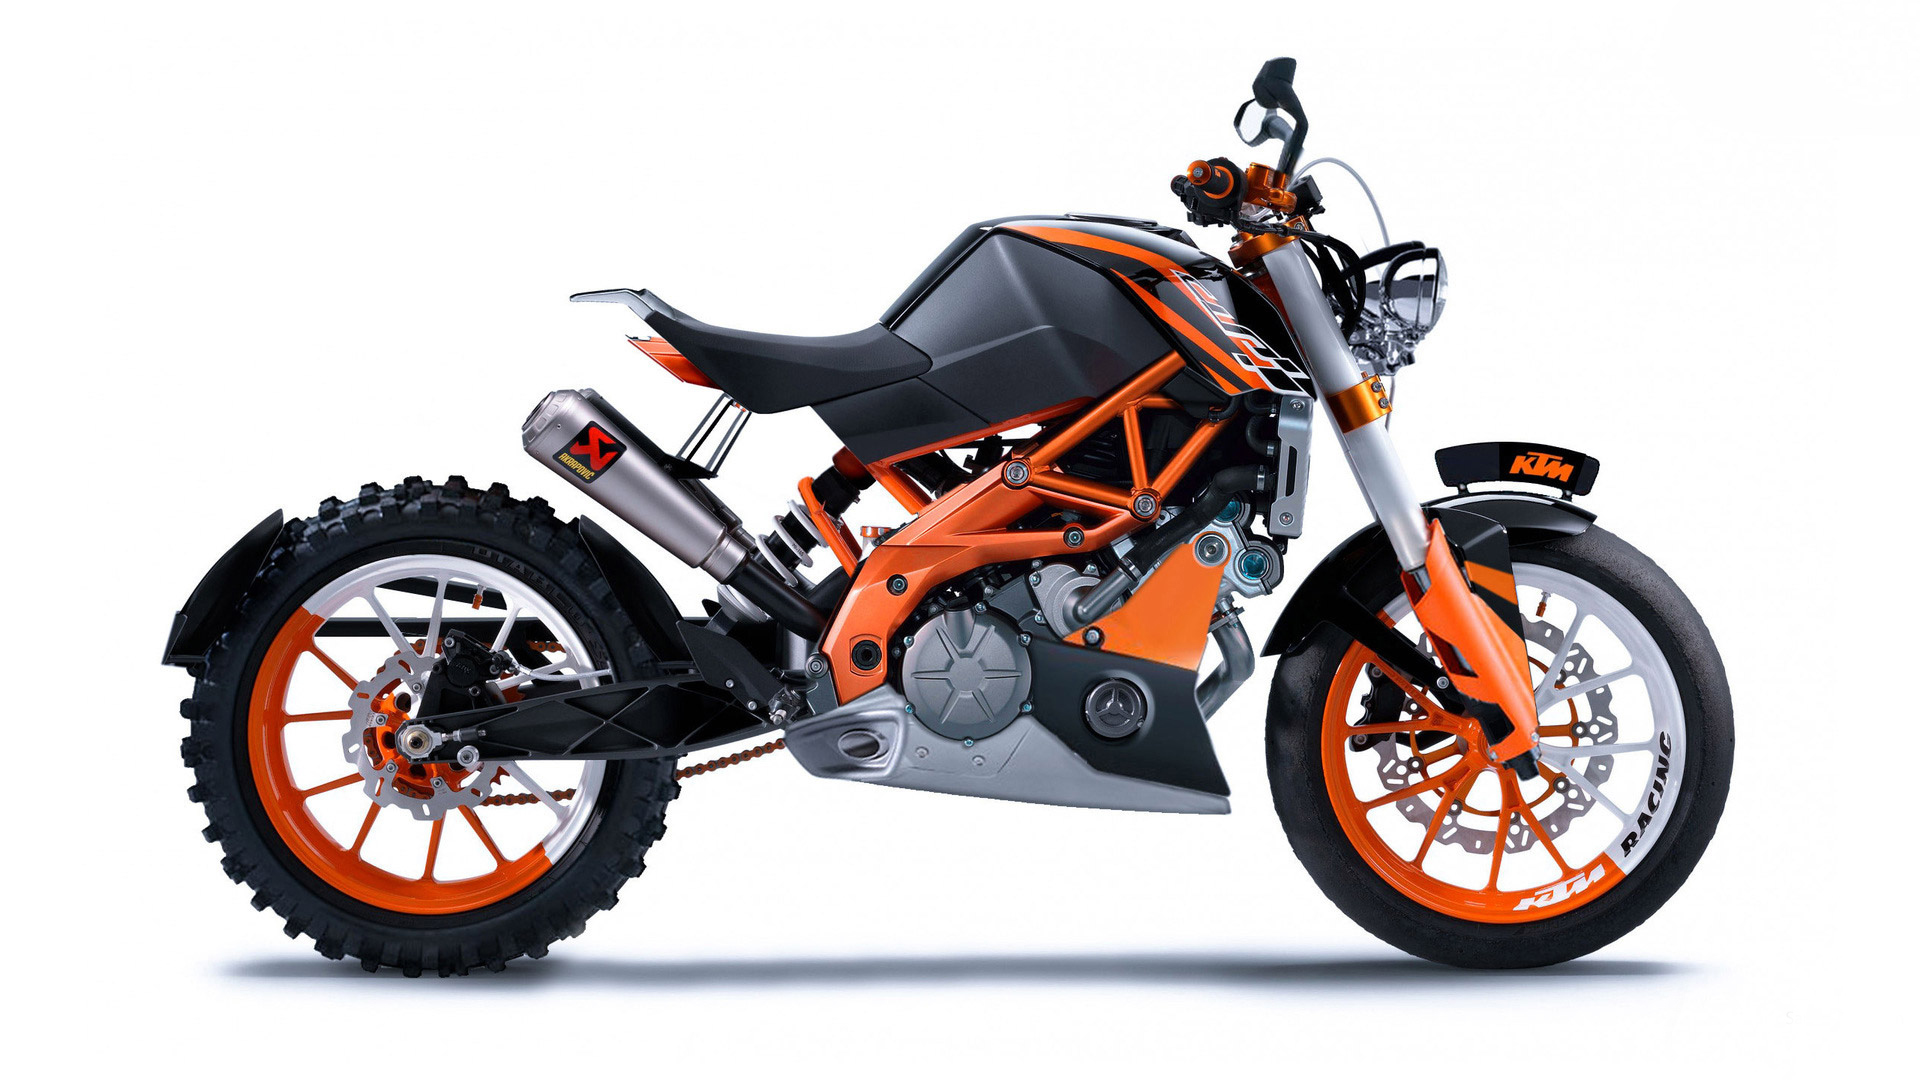 Home Bikes KTM KTM Duke 125 Bike HD Wallpapers 1920x1080